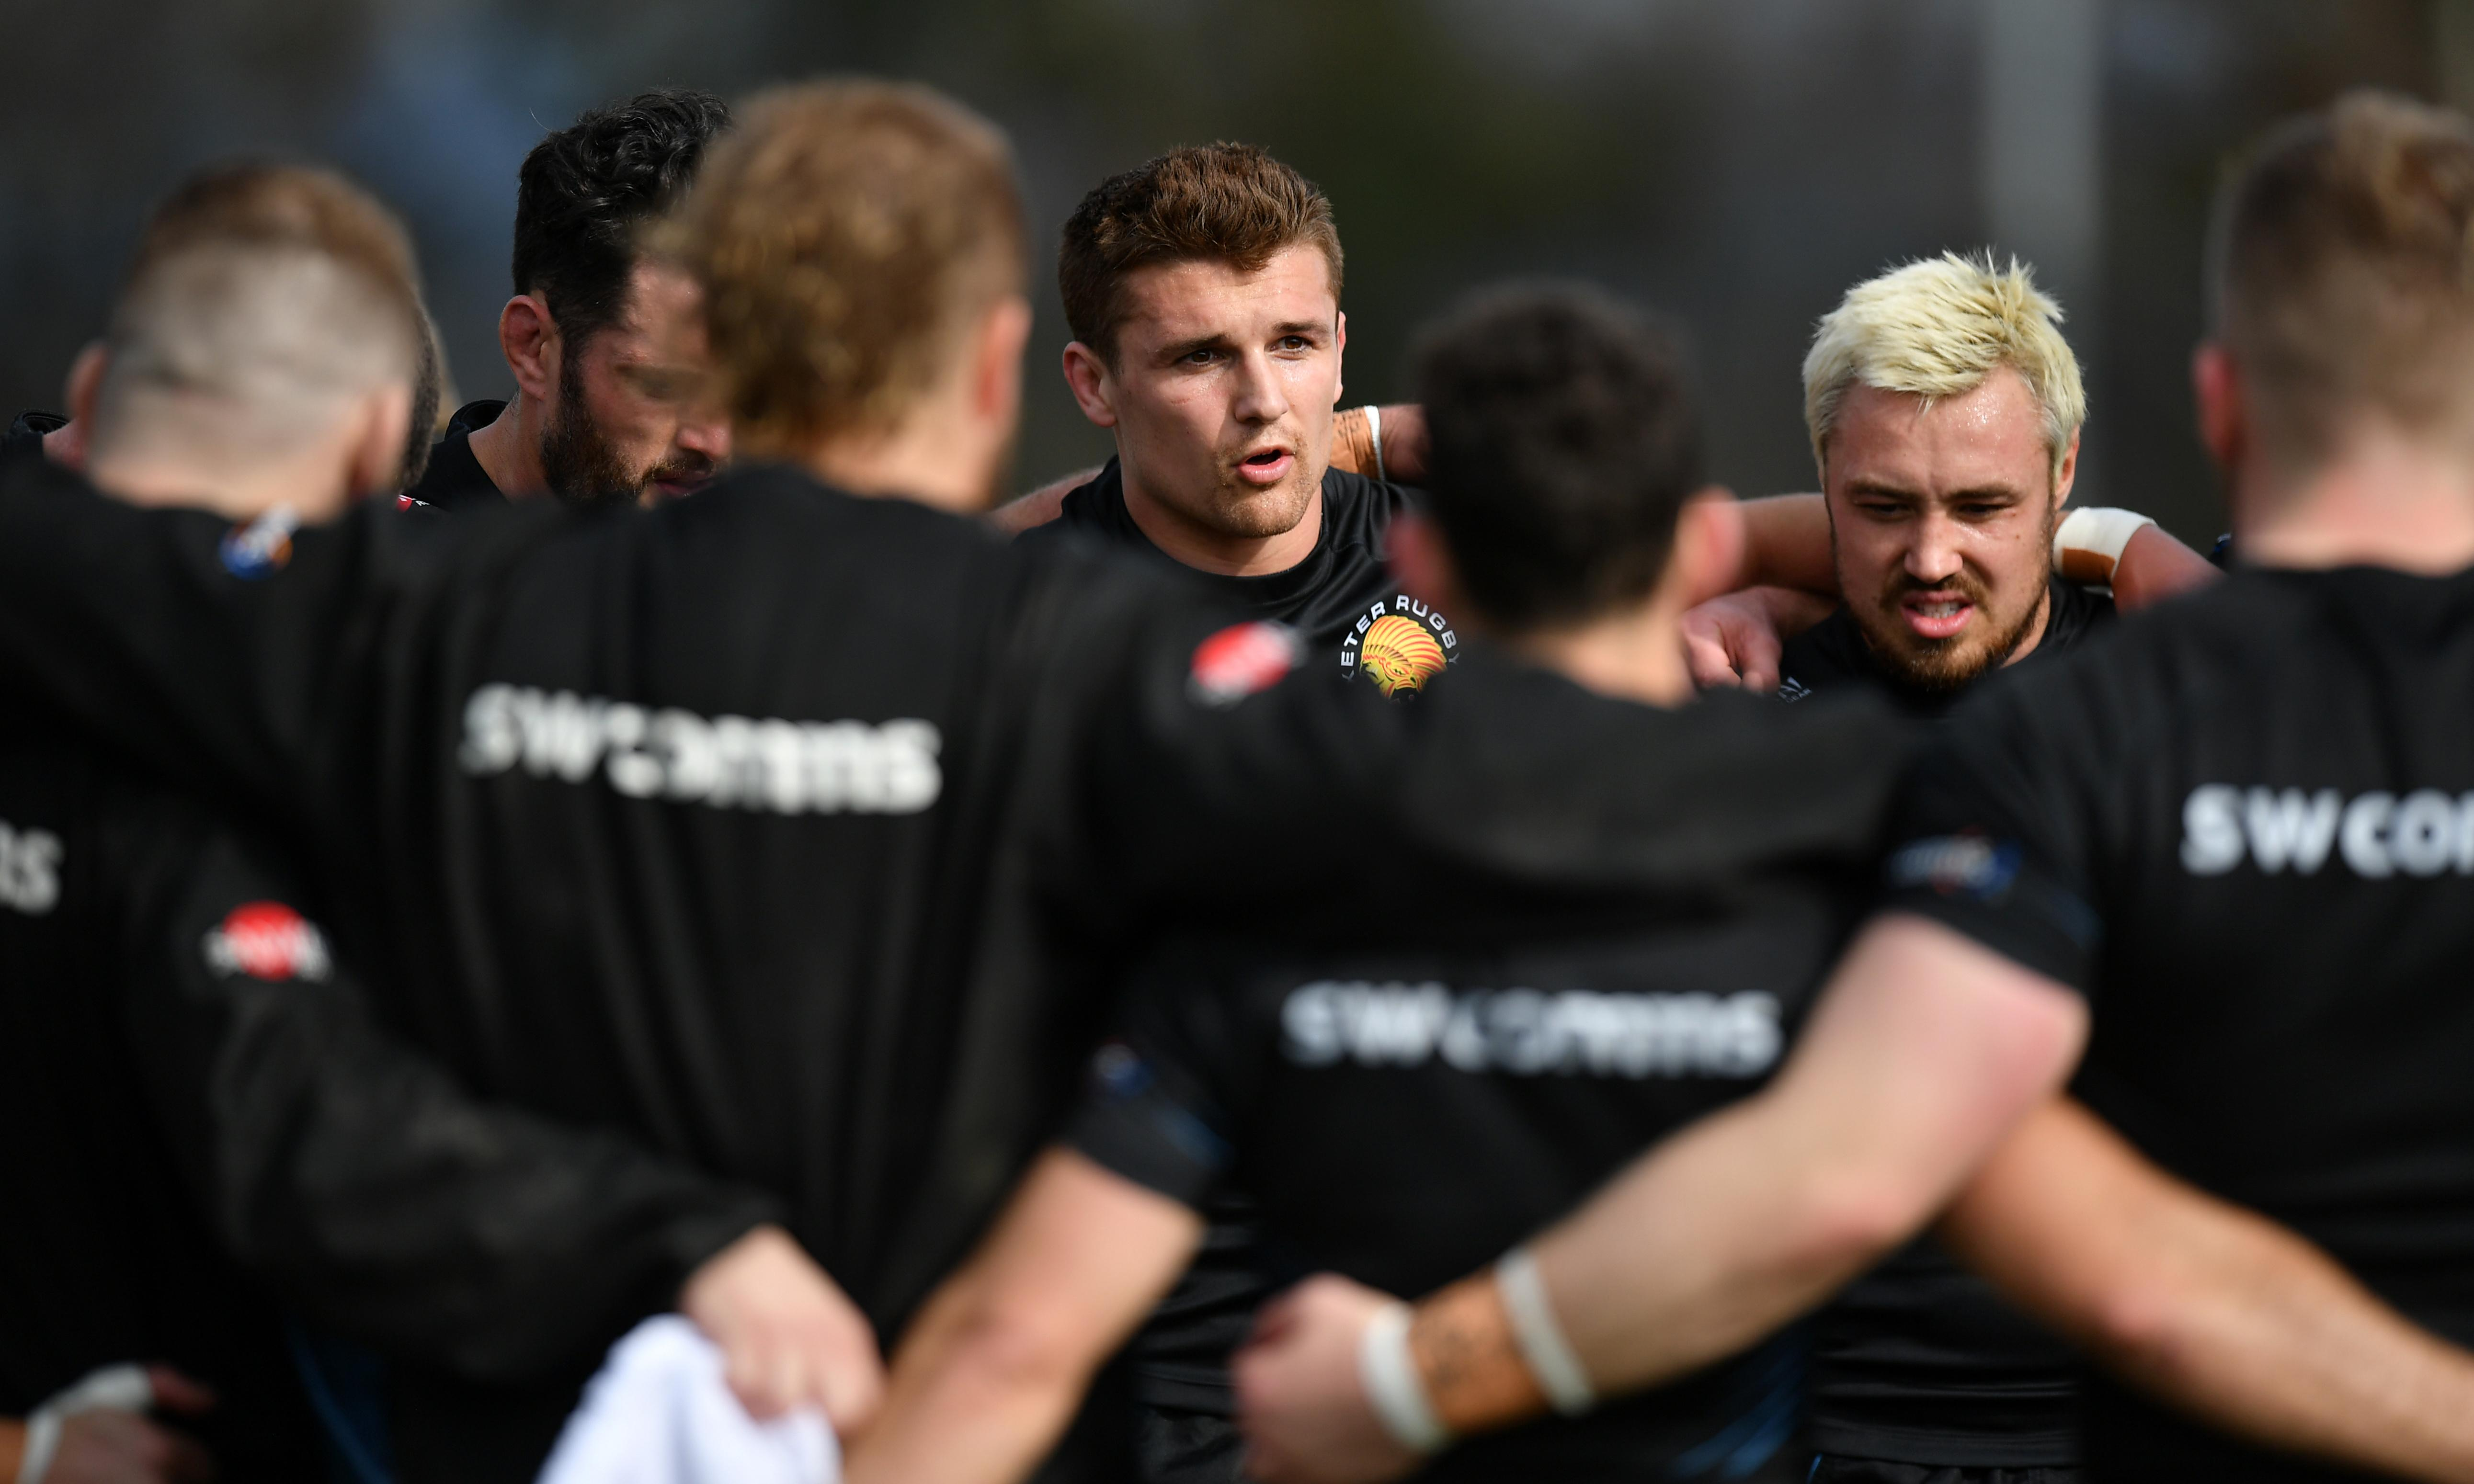 Going from the Six Nations back to club rugby can be frustrating